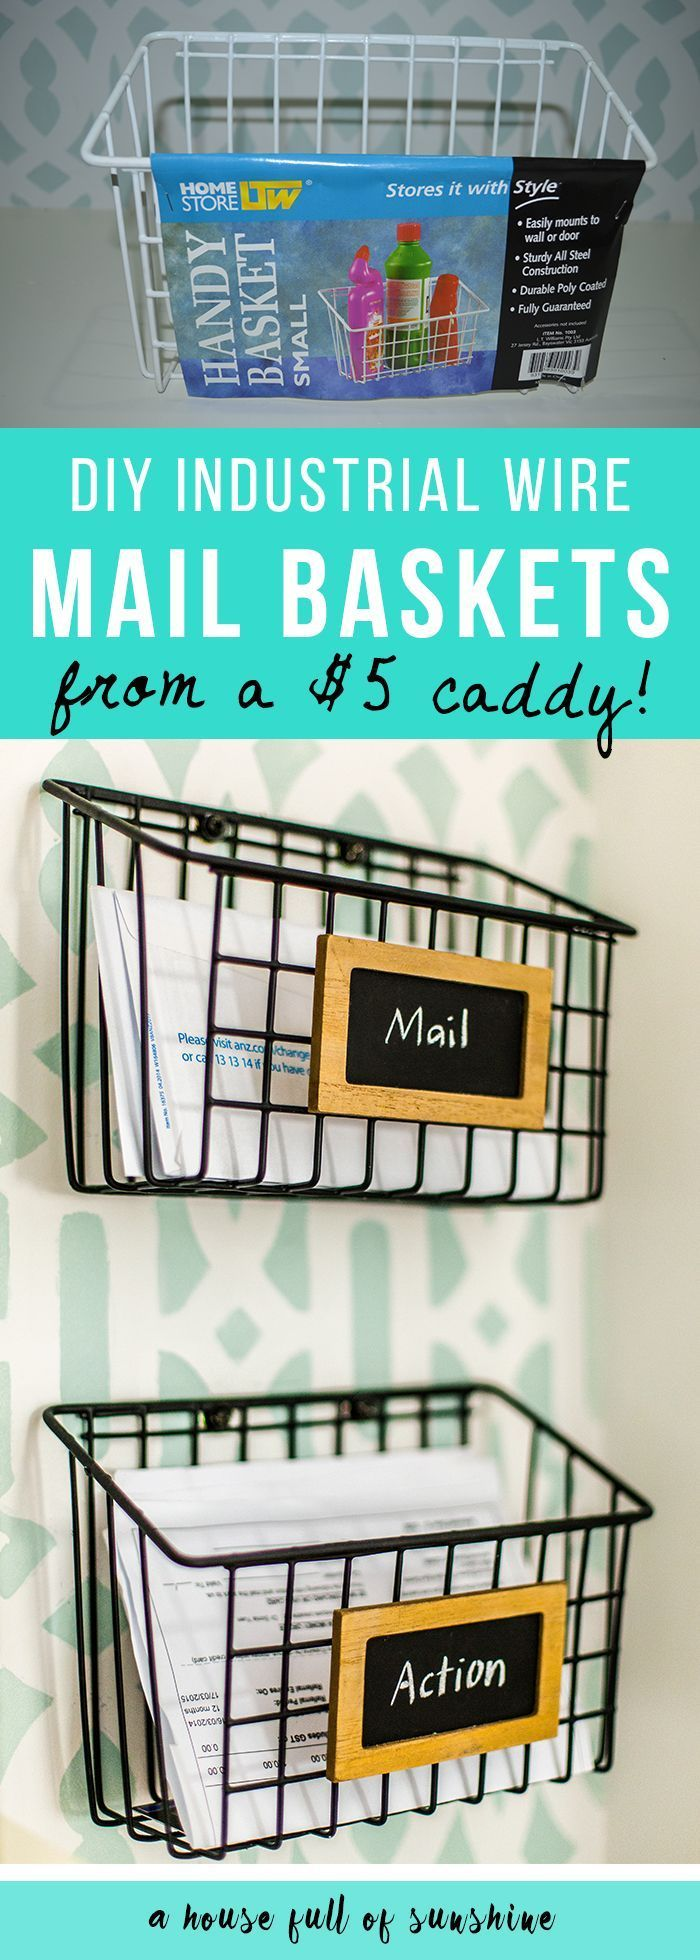 38 Brilliant Home Office Decor Projects | Cleaning caddy, Clever and ...